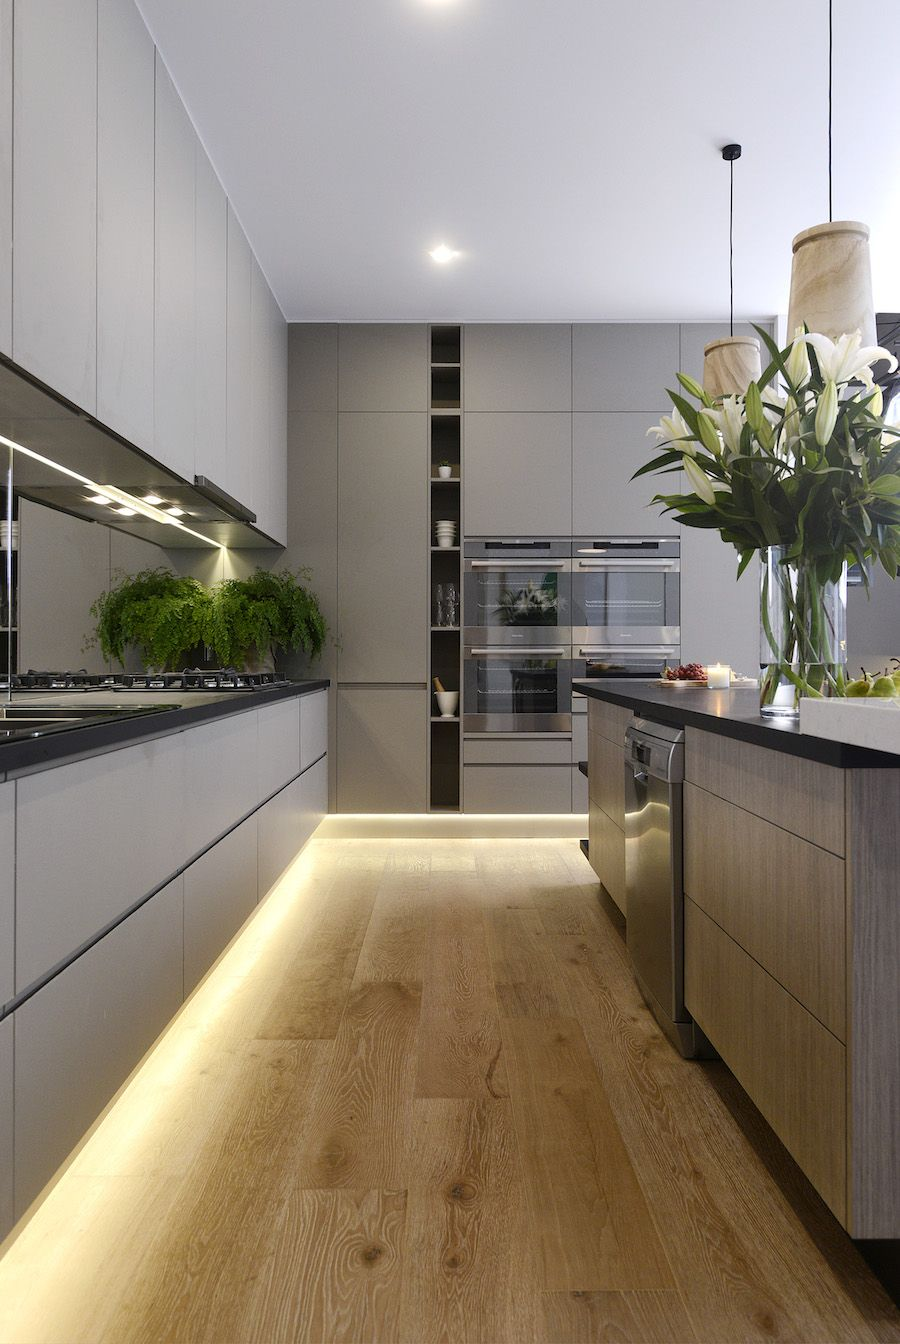 Elegant Love The Floor Lighting! Fenix Kitchen Bench L Pear Artwork L Wooden  Pendant Lights L Under Cabinet LED Strip Lighting L Open Plan Kitchen